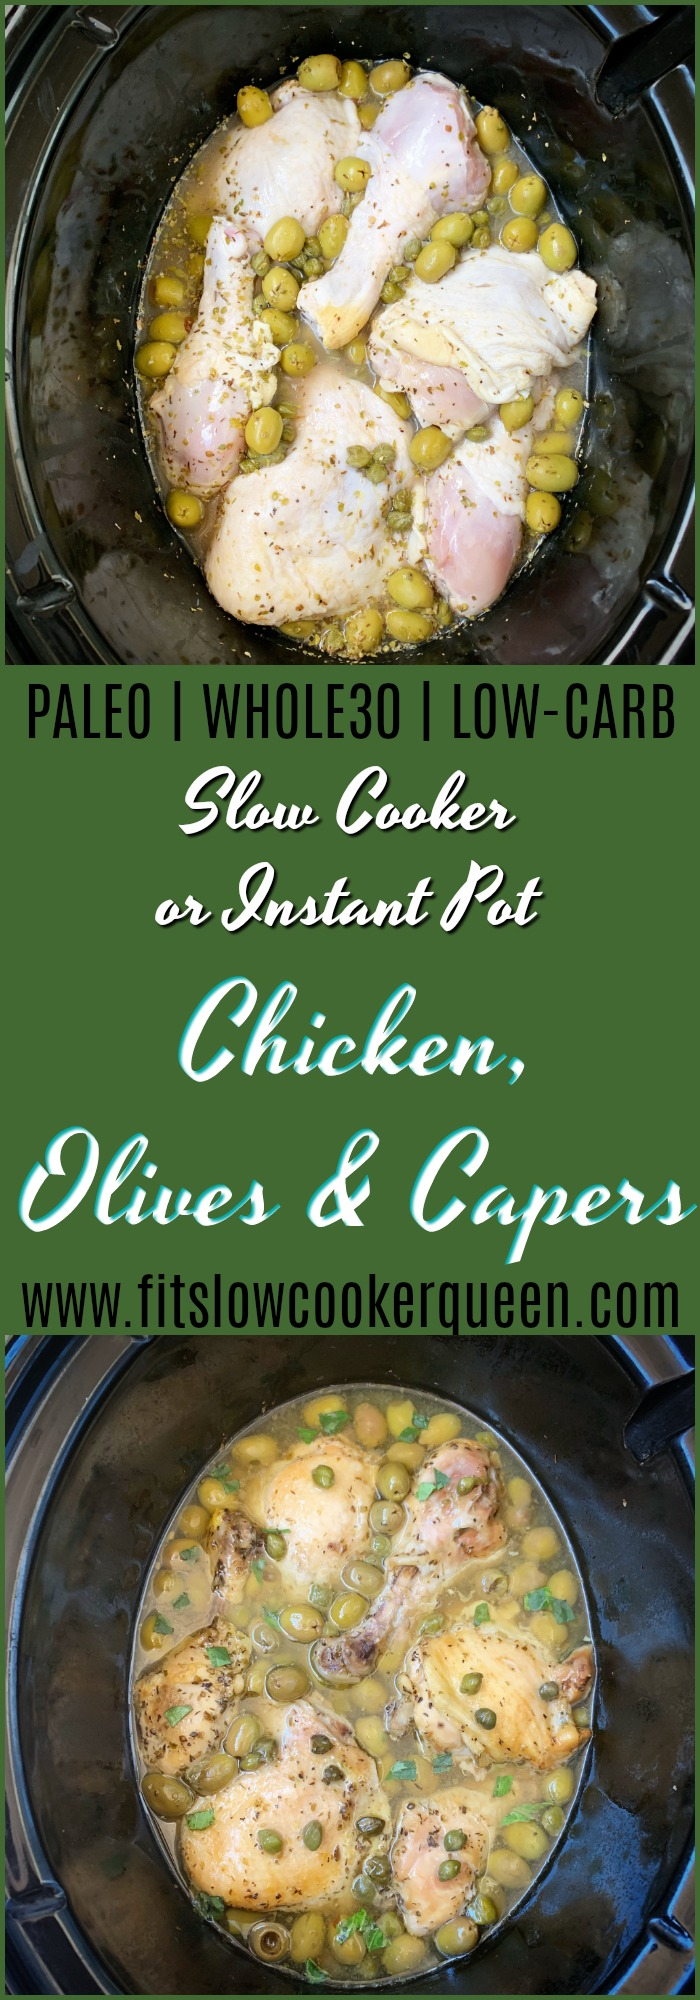 Olives and capers star in this healthy and easy chicken recipe that can be made in your slow cooker or Instant Pot.